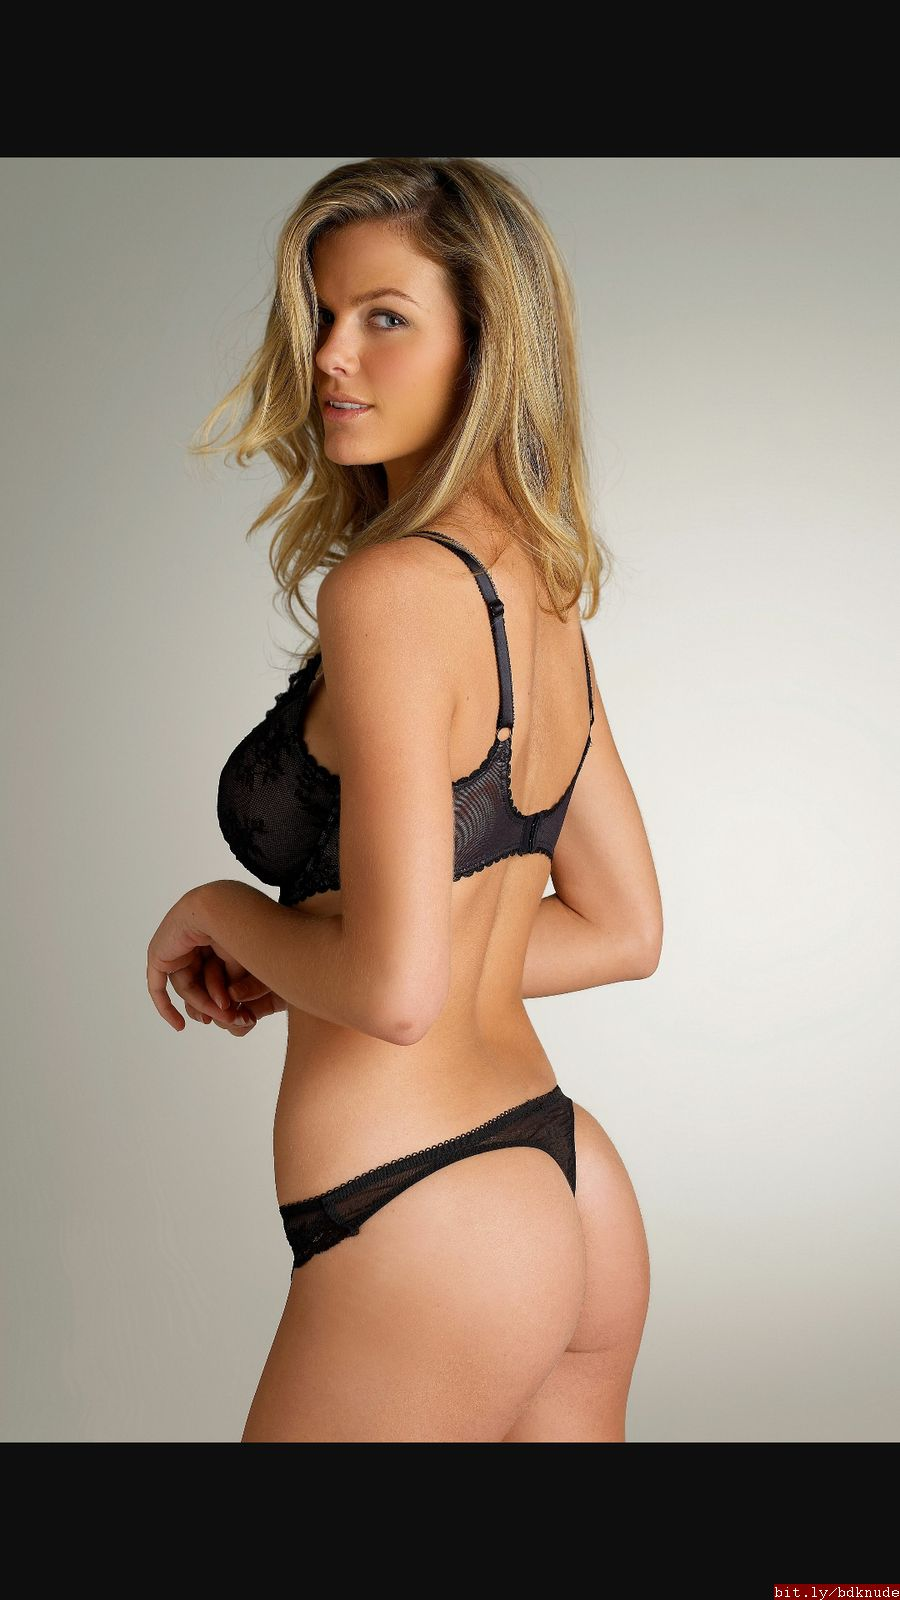 Brooklyn Decker Nude is Just Too Much - PICS naked (72 photos), Feet Celebrites pic